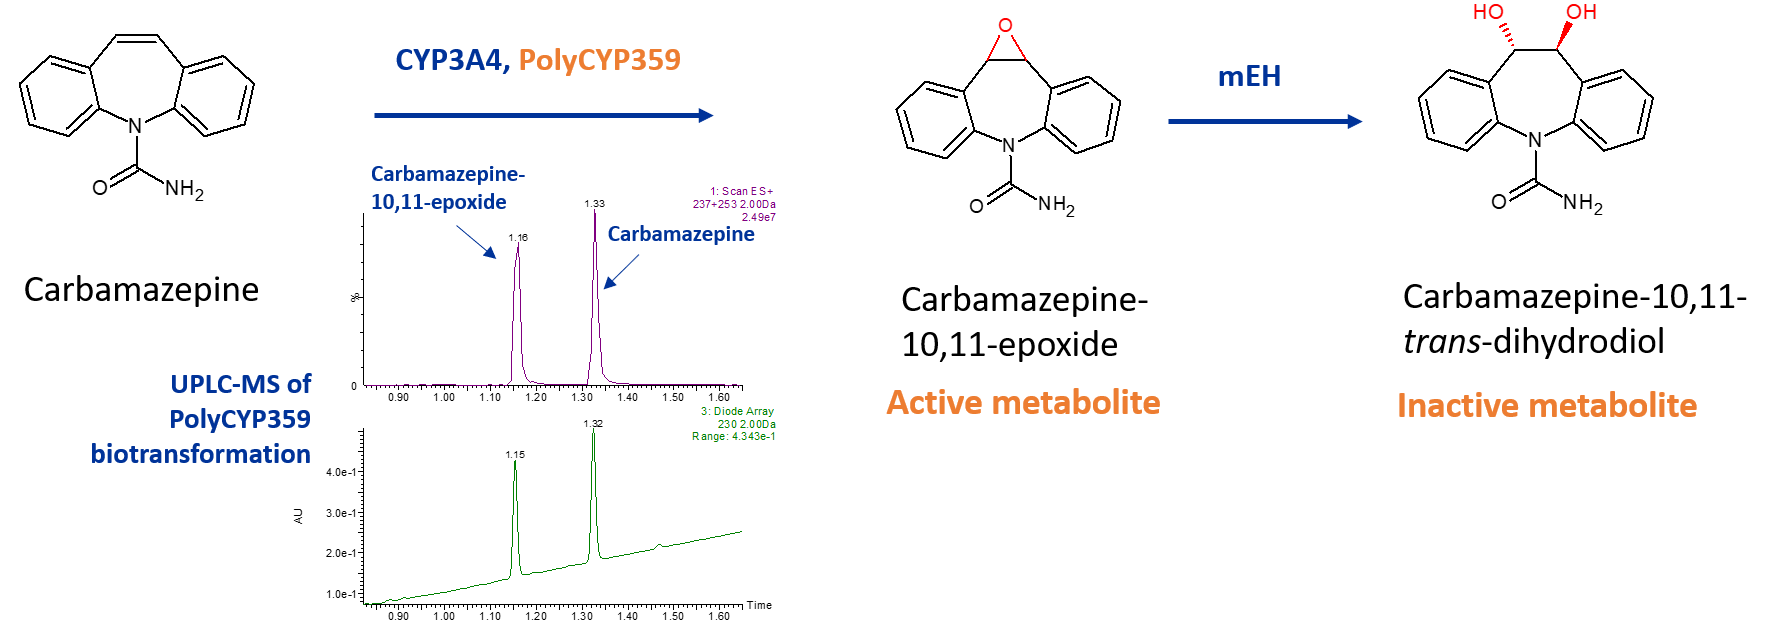 Dihydrodiol and epoxide metabolites of carbamazepine